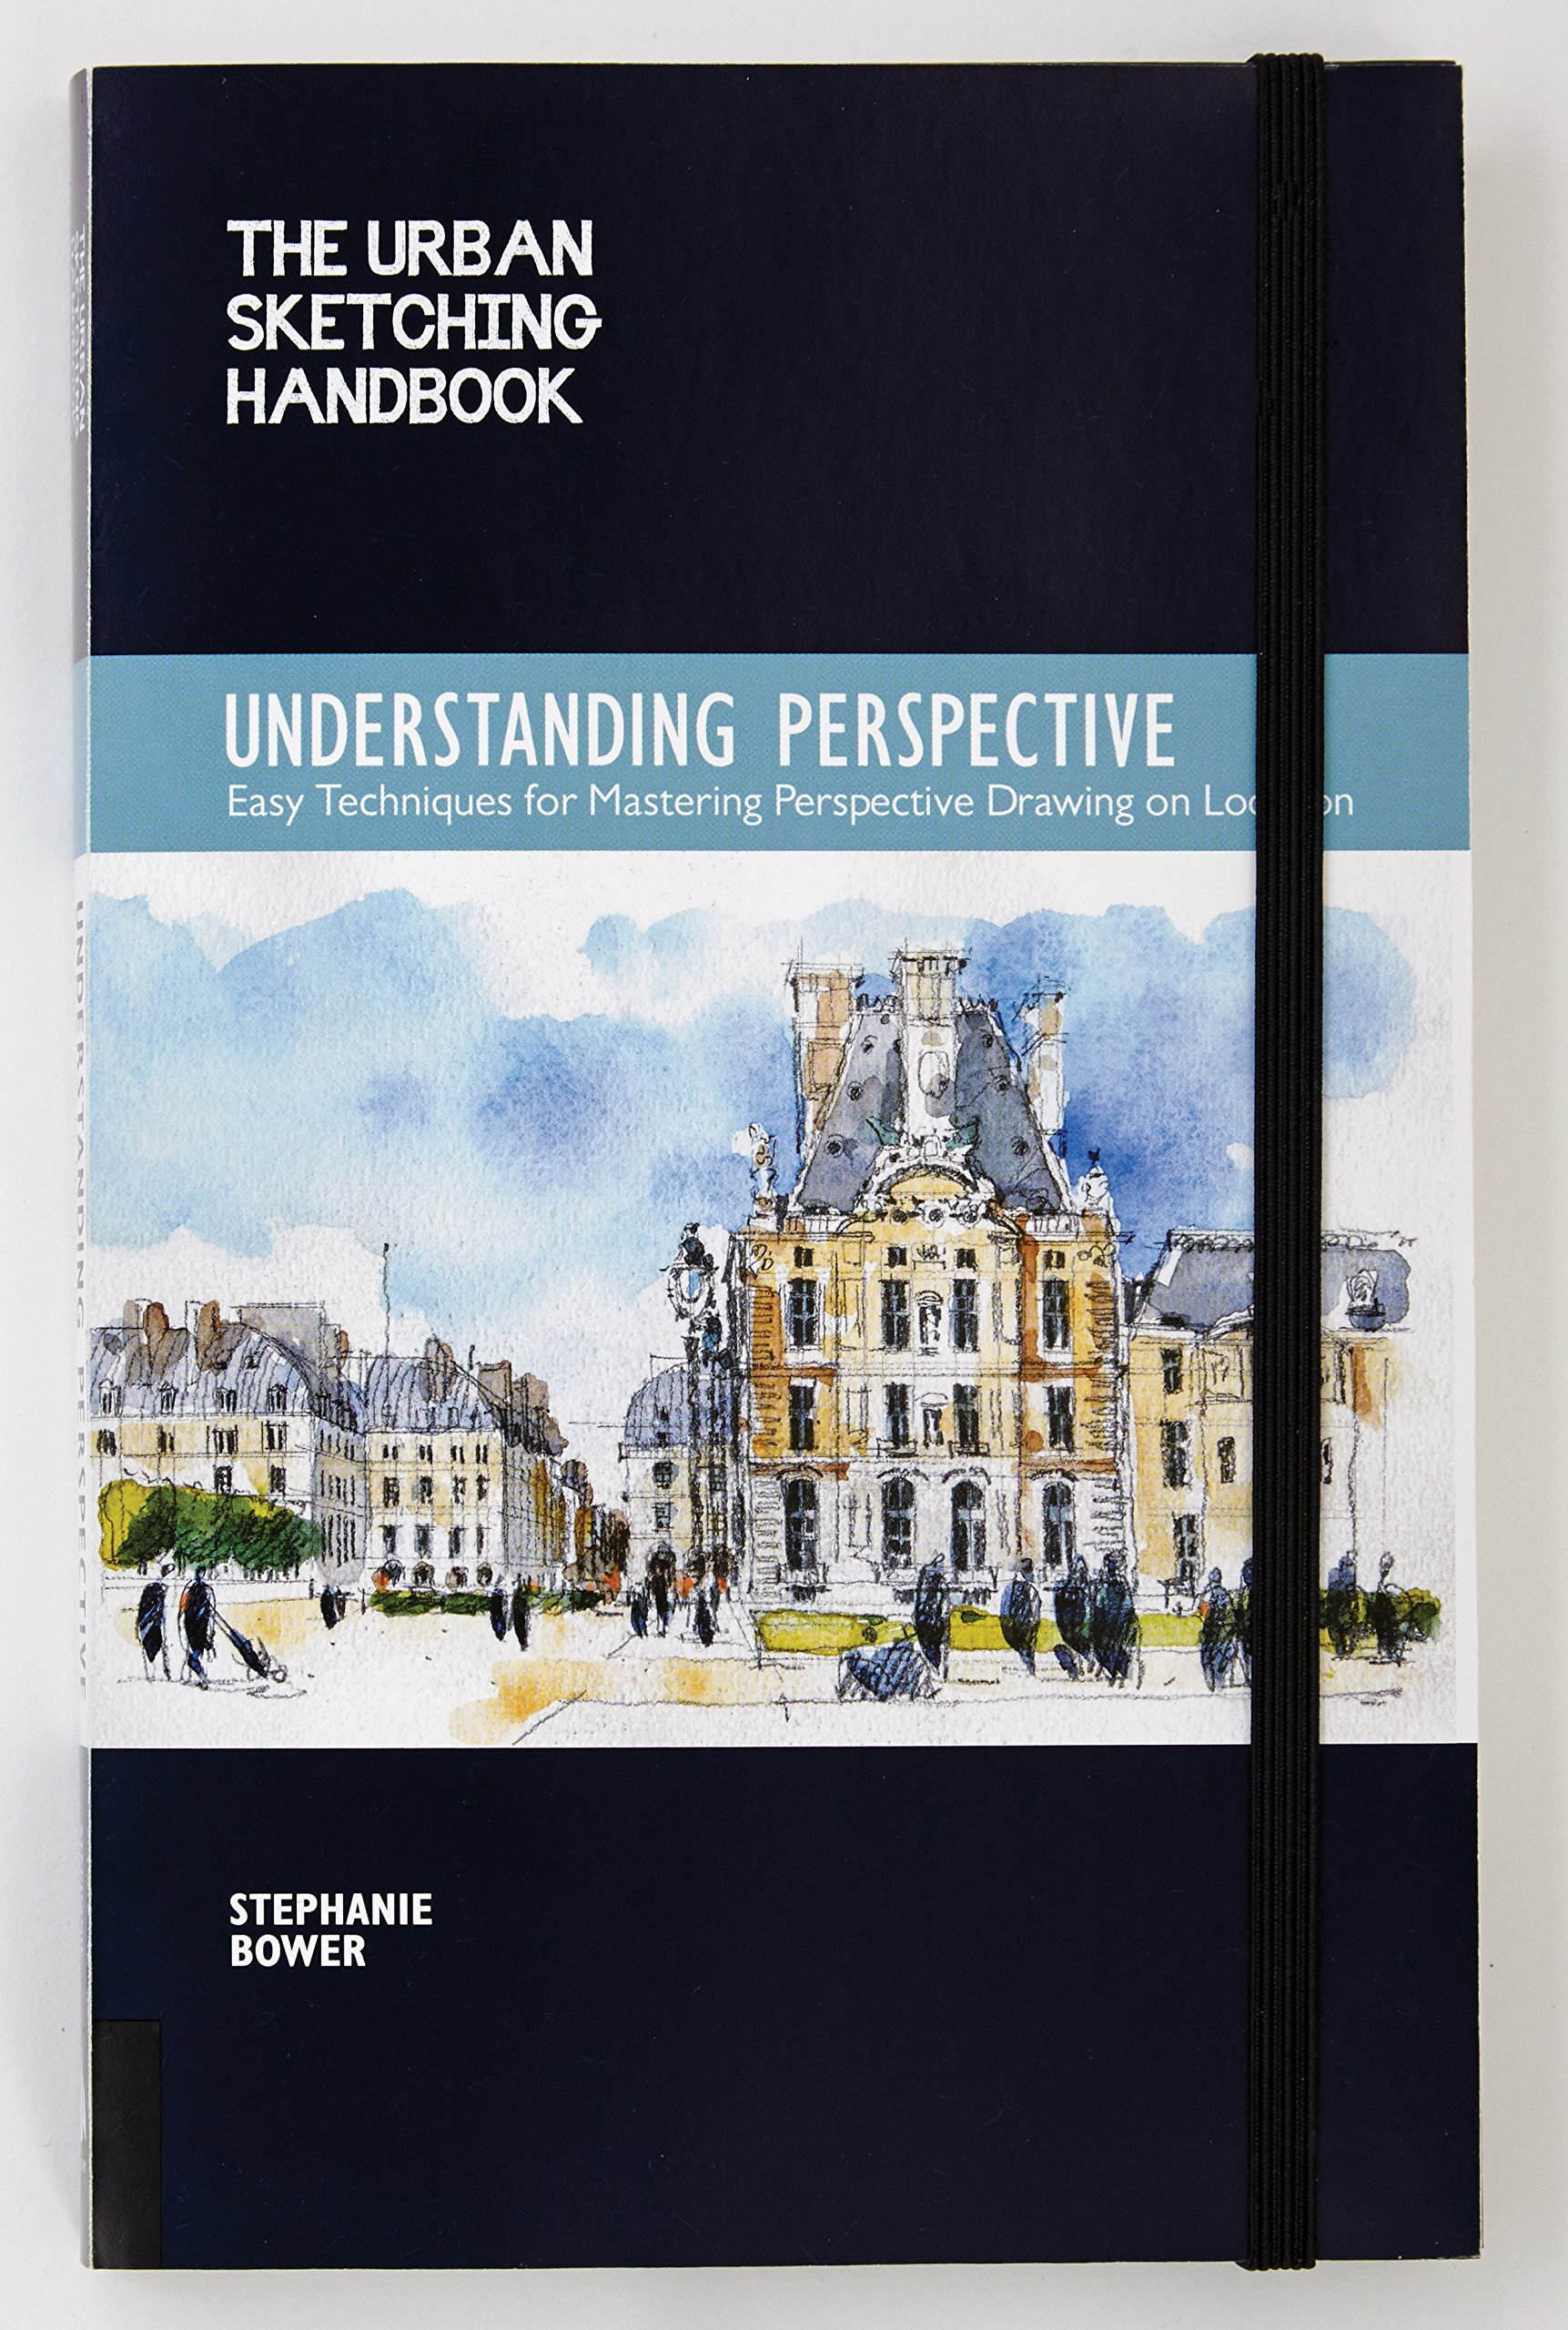 The Urban Sketching Handbook: Understanding Perspective: Easy Techniques for Mastering Perspective Drawing on Location Urban Sketching Handbooks: Amazon.es: ...